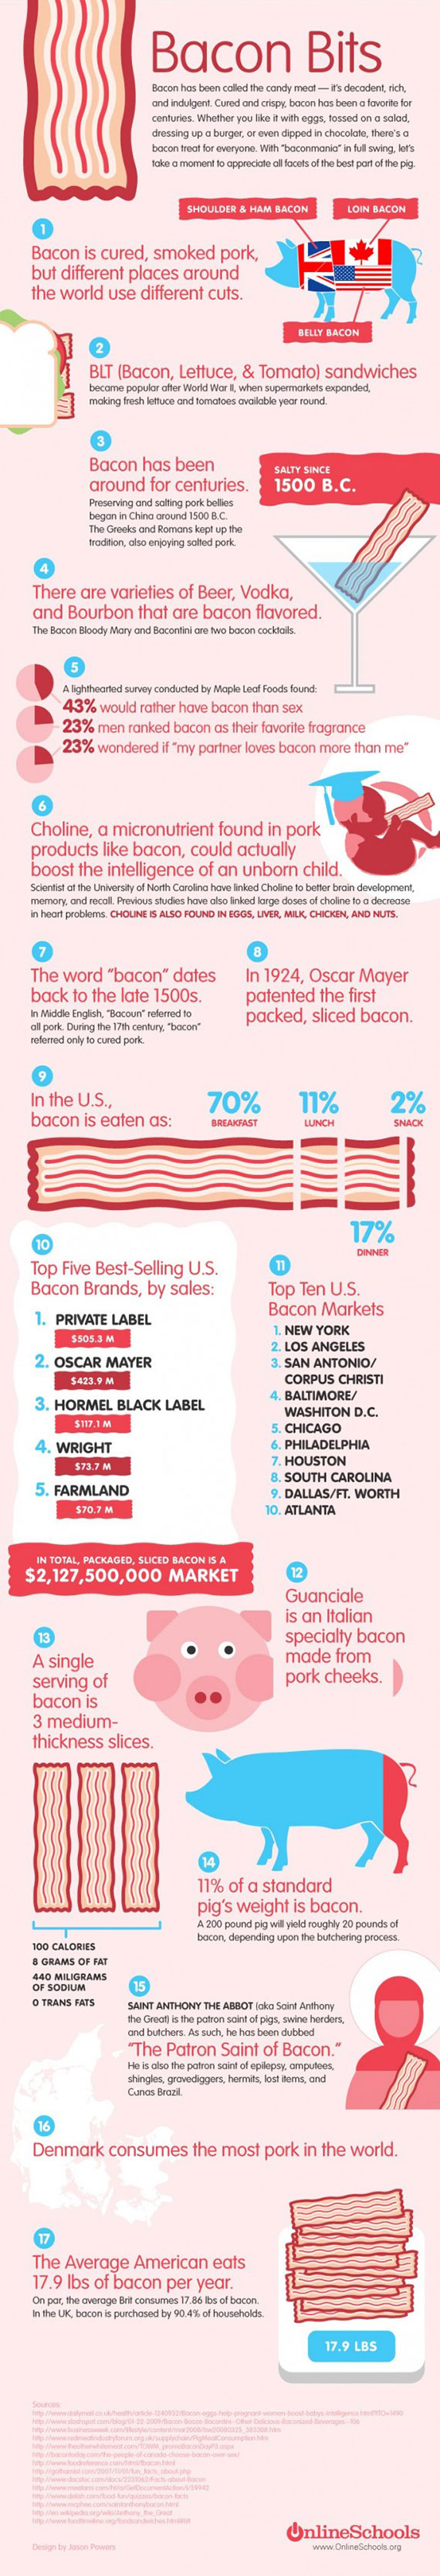 bacon-bits-infographic